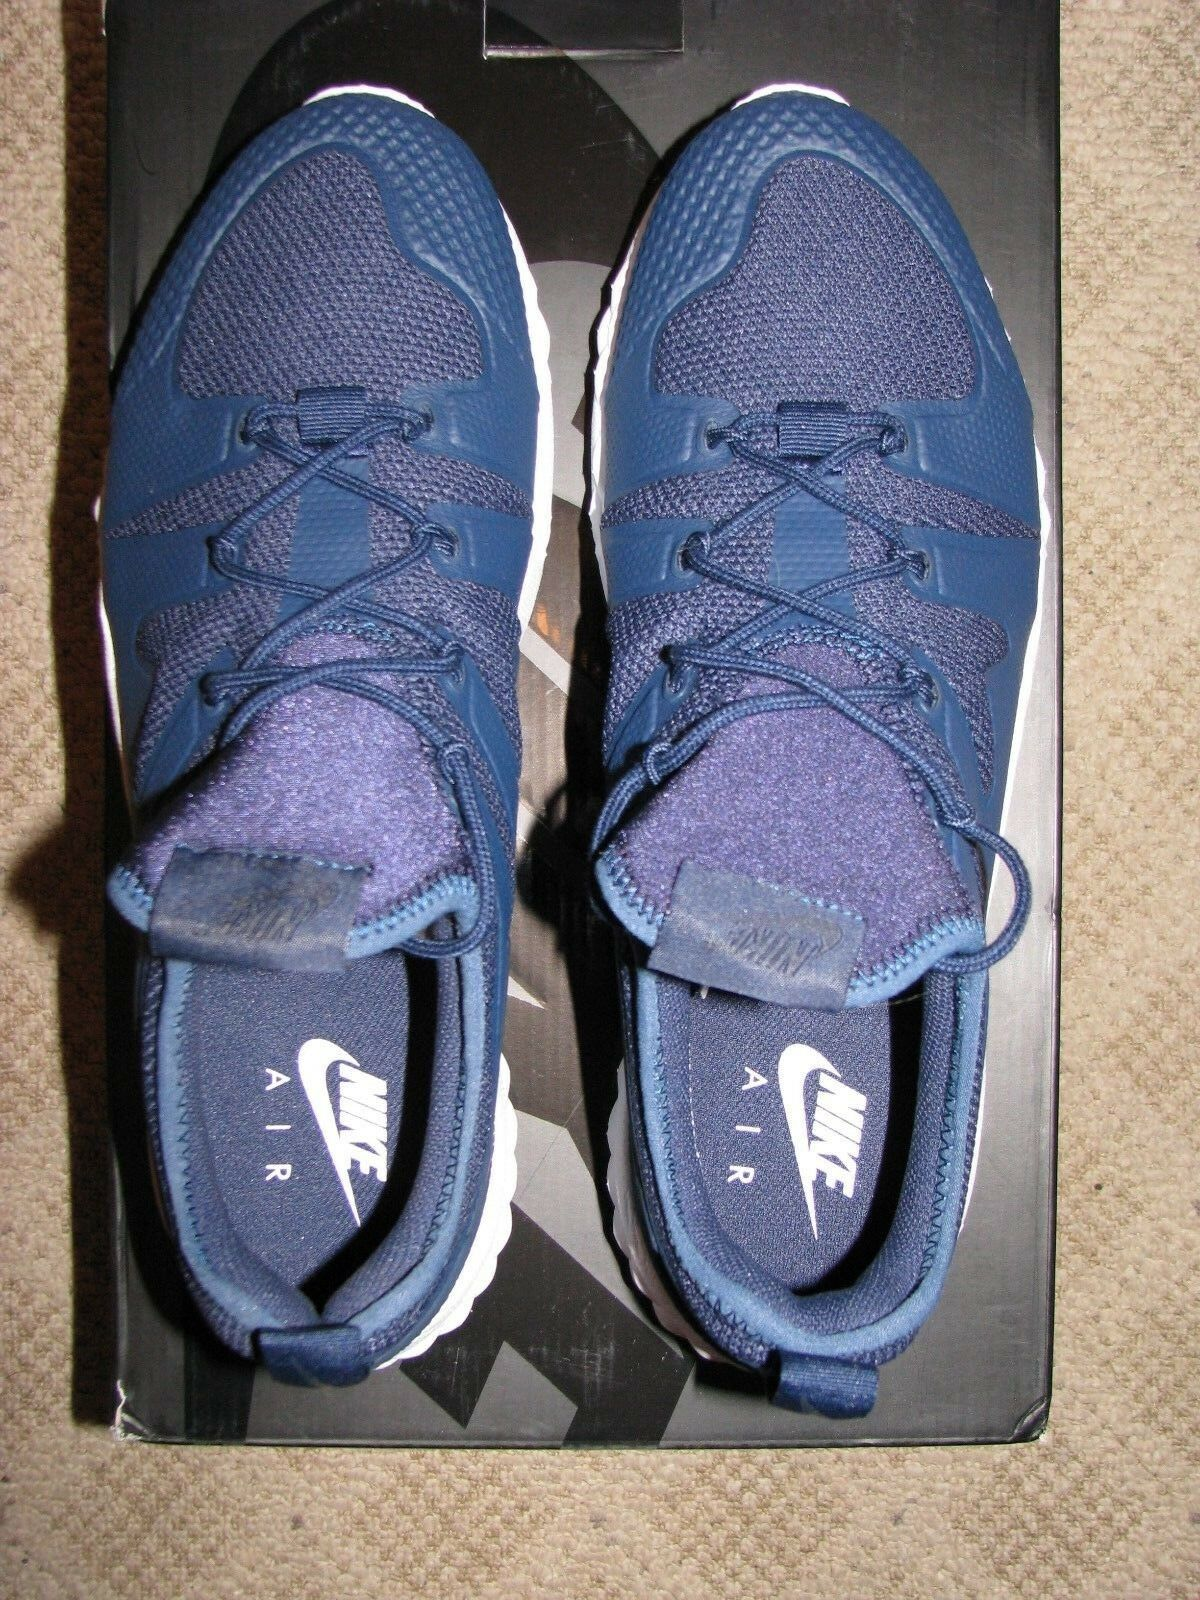 Nike Air Zoom Zoom Zoom LWP '16 Midnight Navy   Obsidian Mens Size 10 DS NEW  918226-400 d64f2c